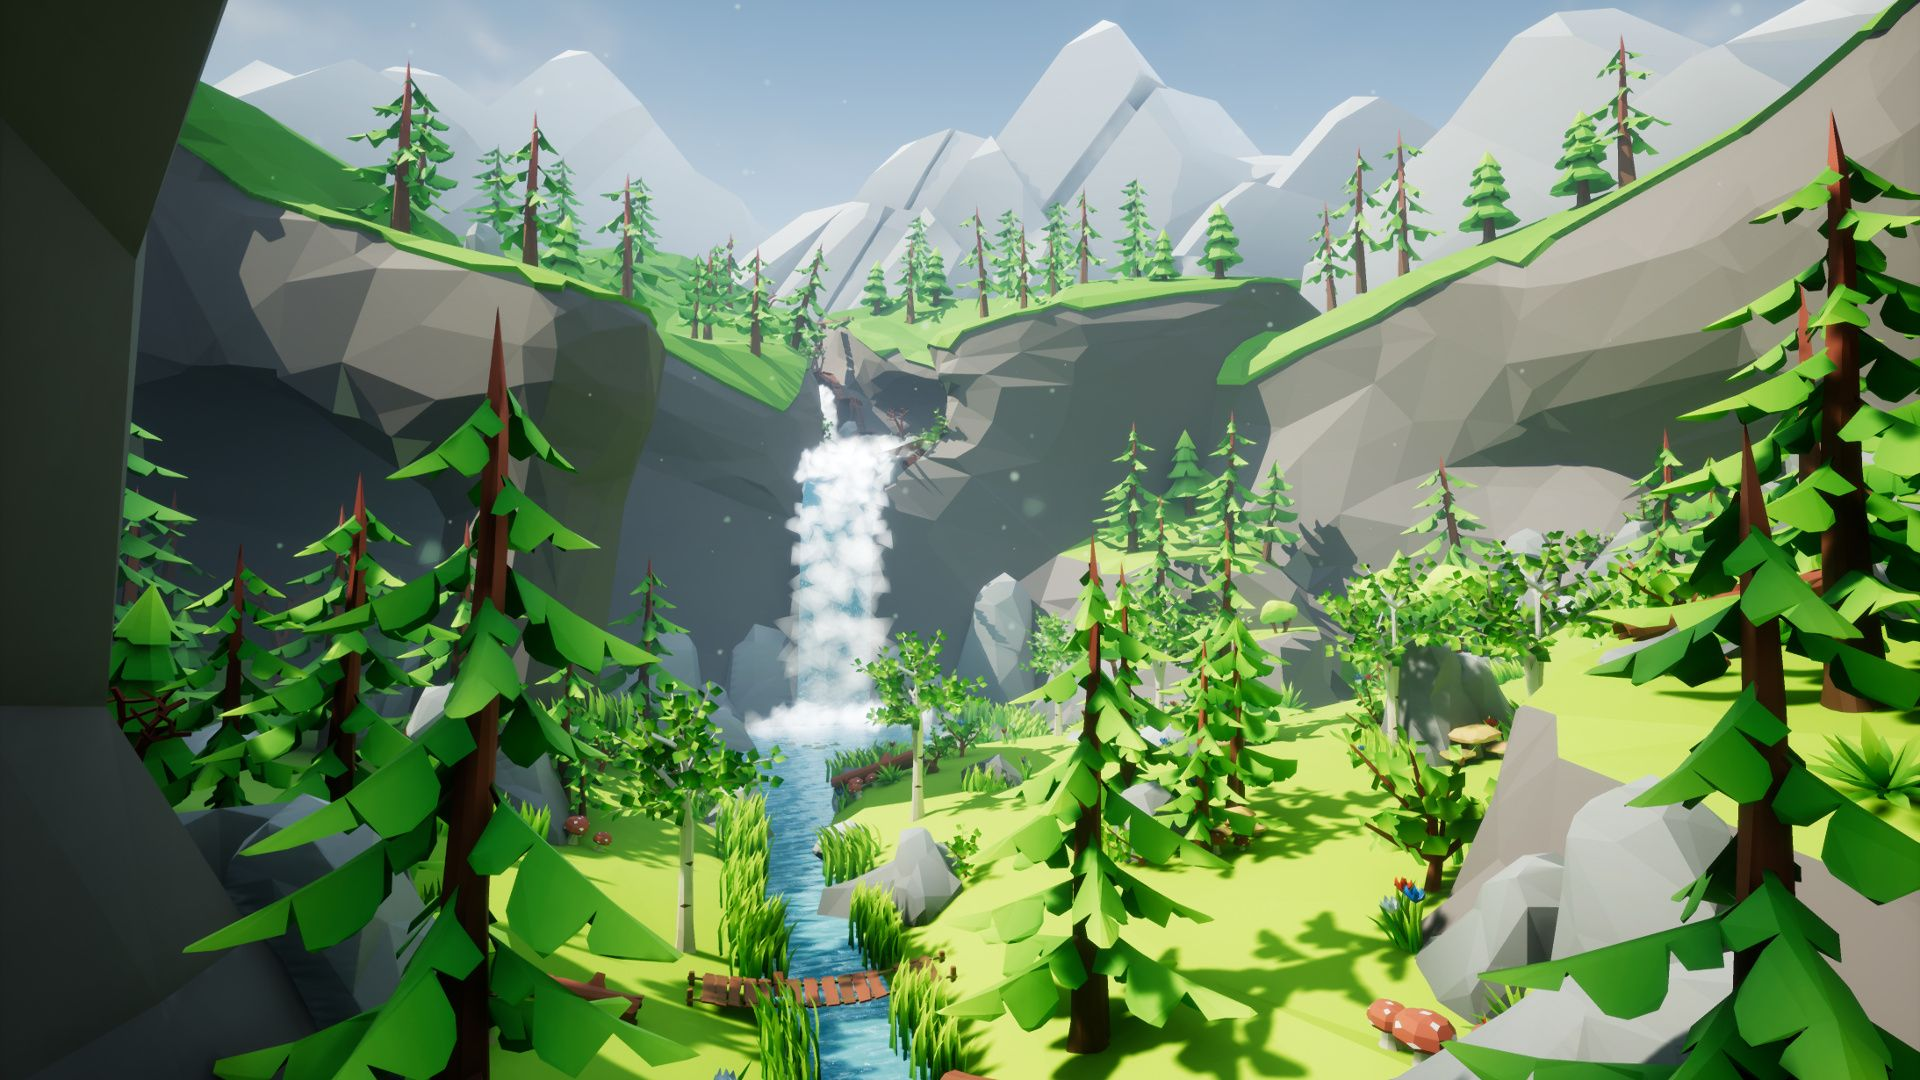 Lowpoly Style Forest Pack by CH Assets in Environments - UE4